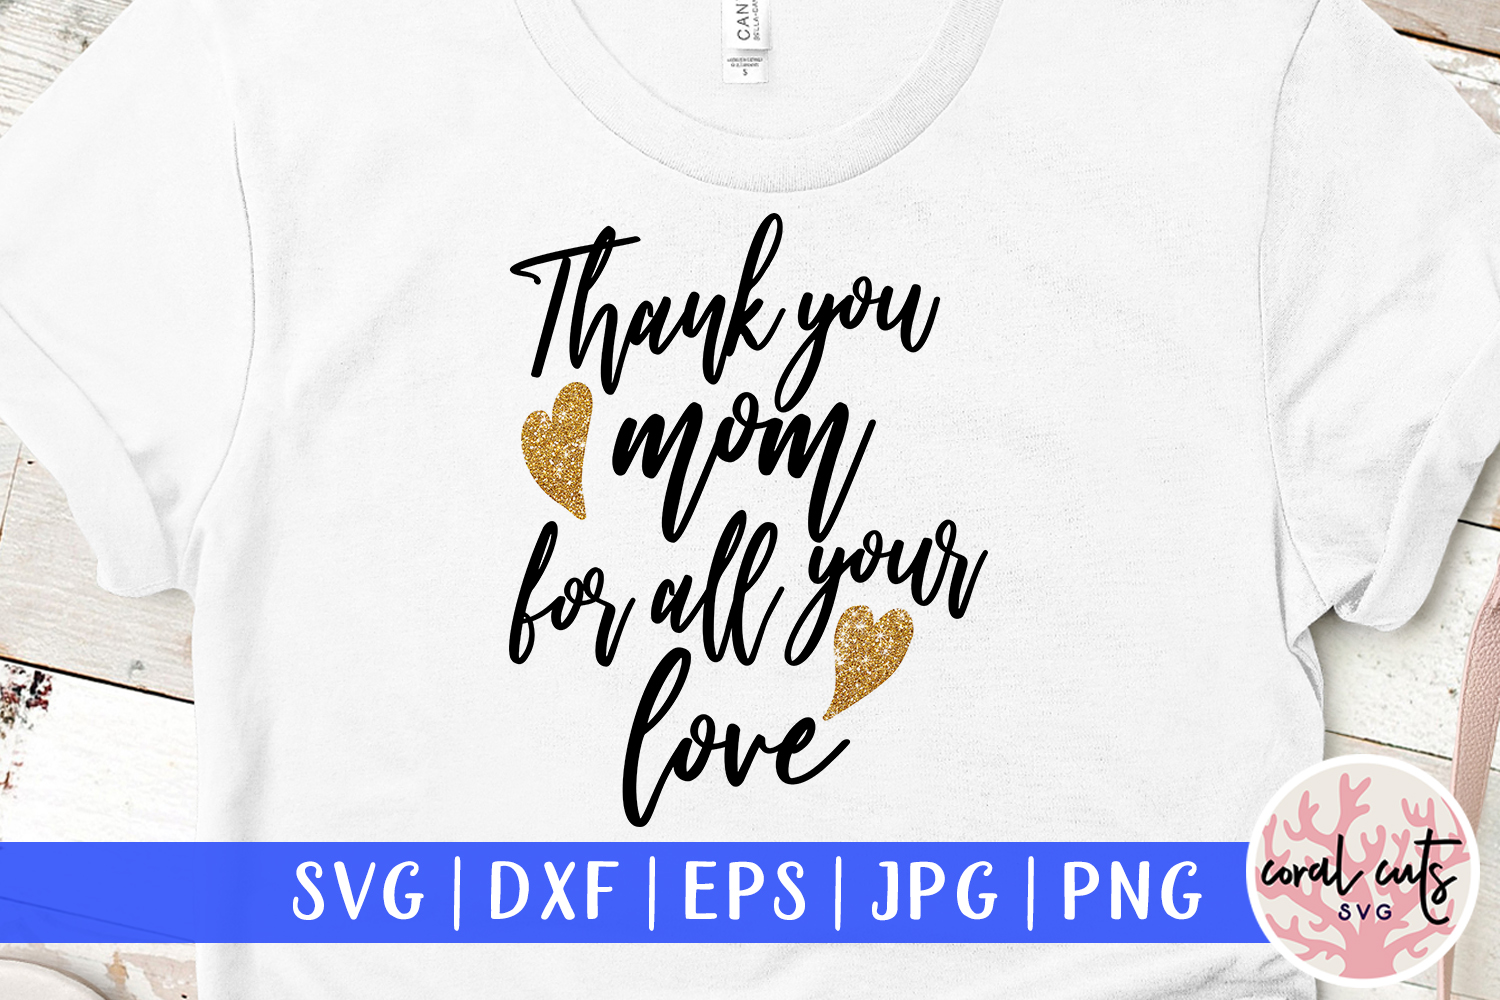 Download Free Thank You Mom For All Your Love Graphic By Coralcutssvg for Cricut Explore, Silhouette and other cutting machines.